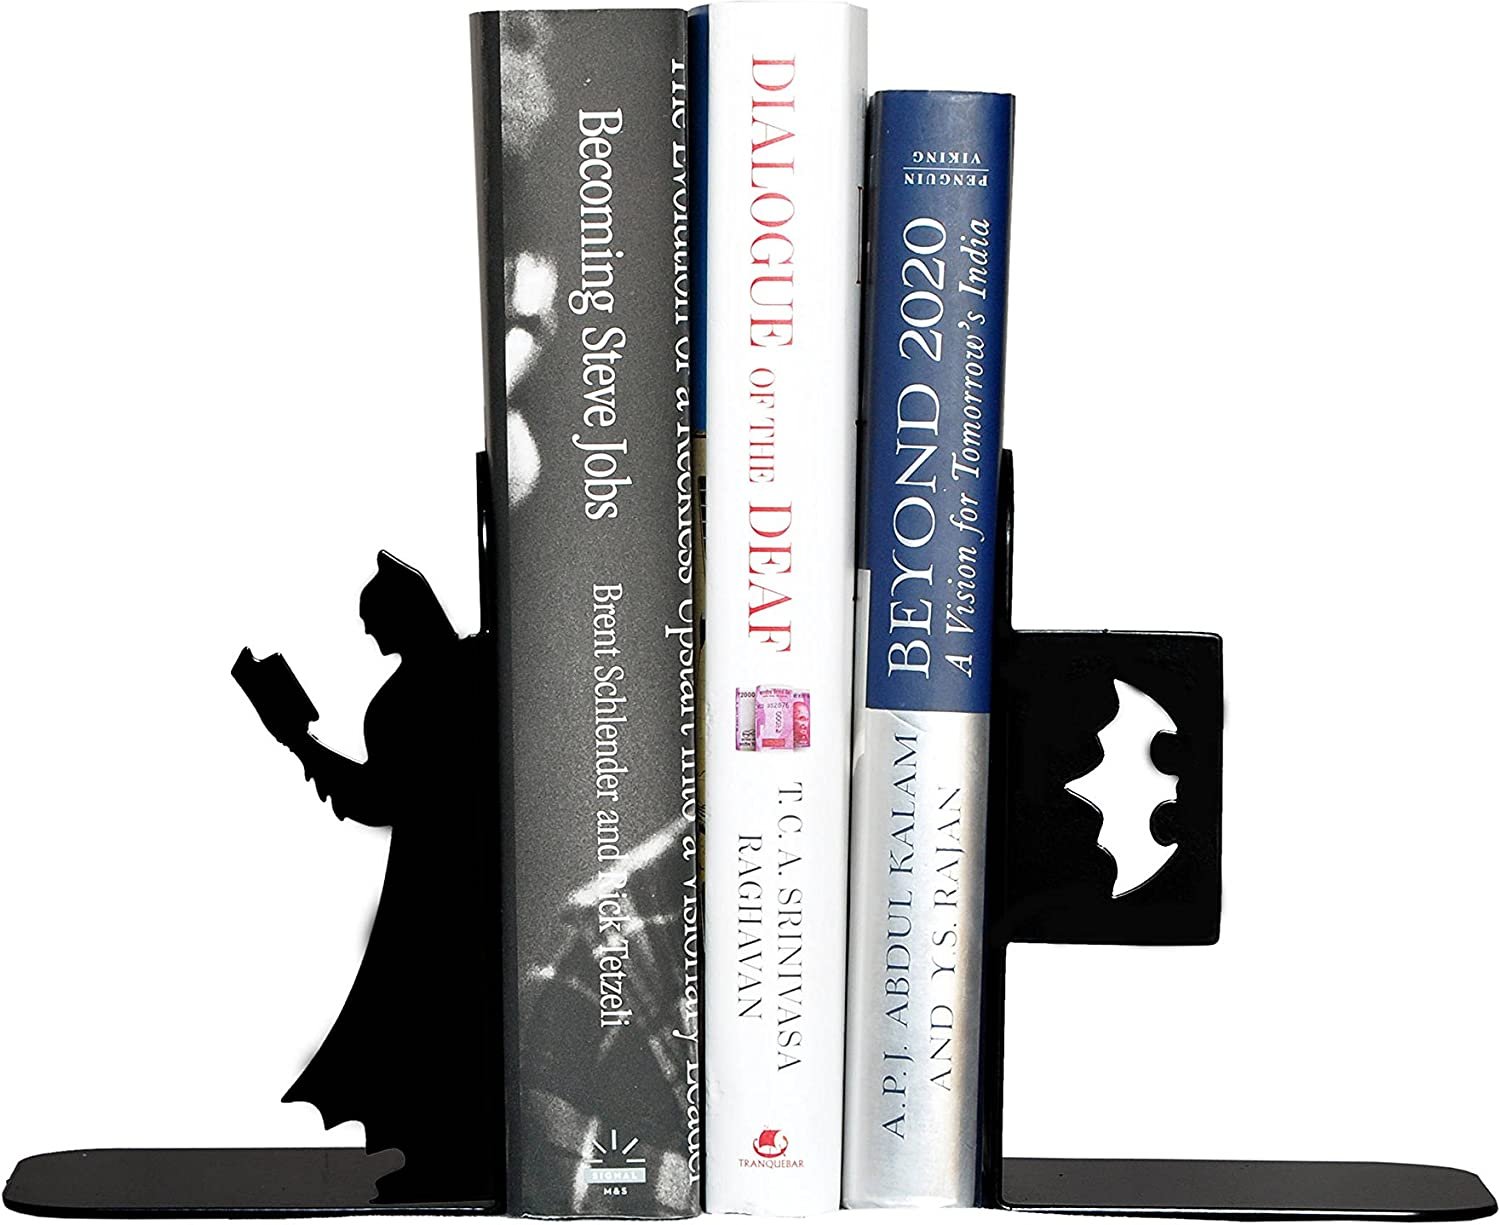 HeavenlyKraft superhero Book Reading Decorative Metal Bookend, Non Skid Book End, Book Stopper for Home Office Decor Shelves, 5.9 X 3.9 X 3.14 Inch Per Piece